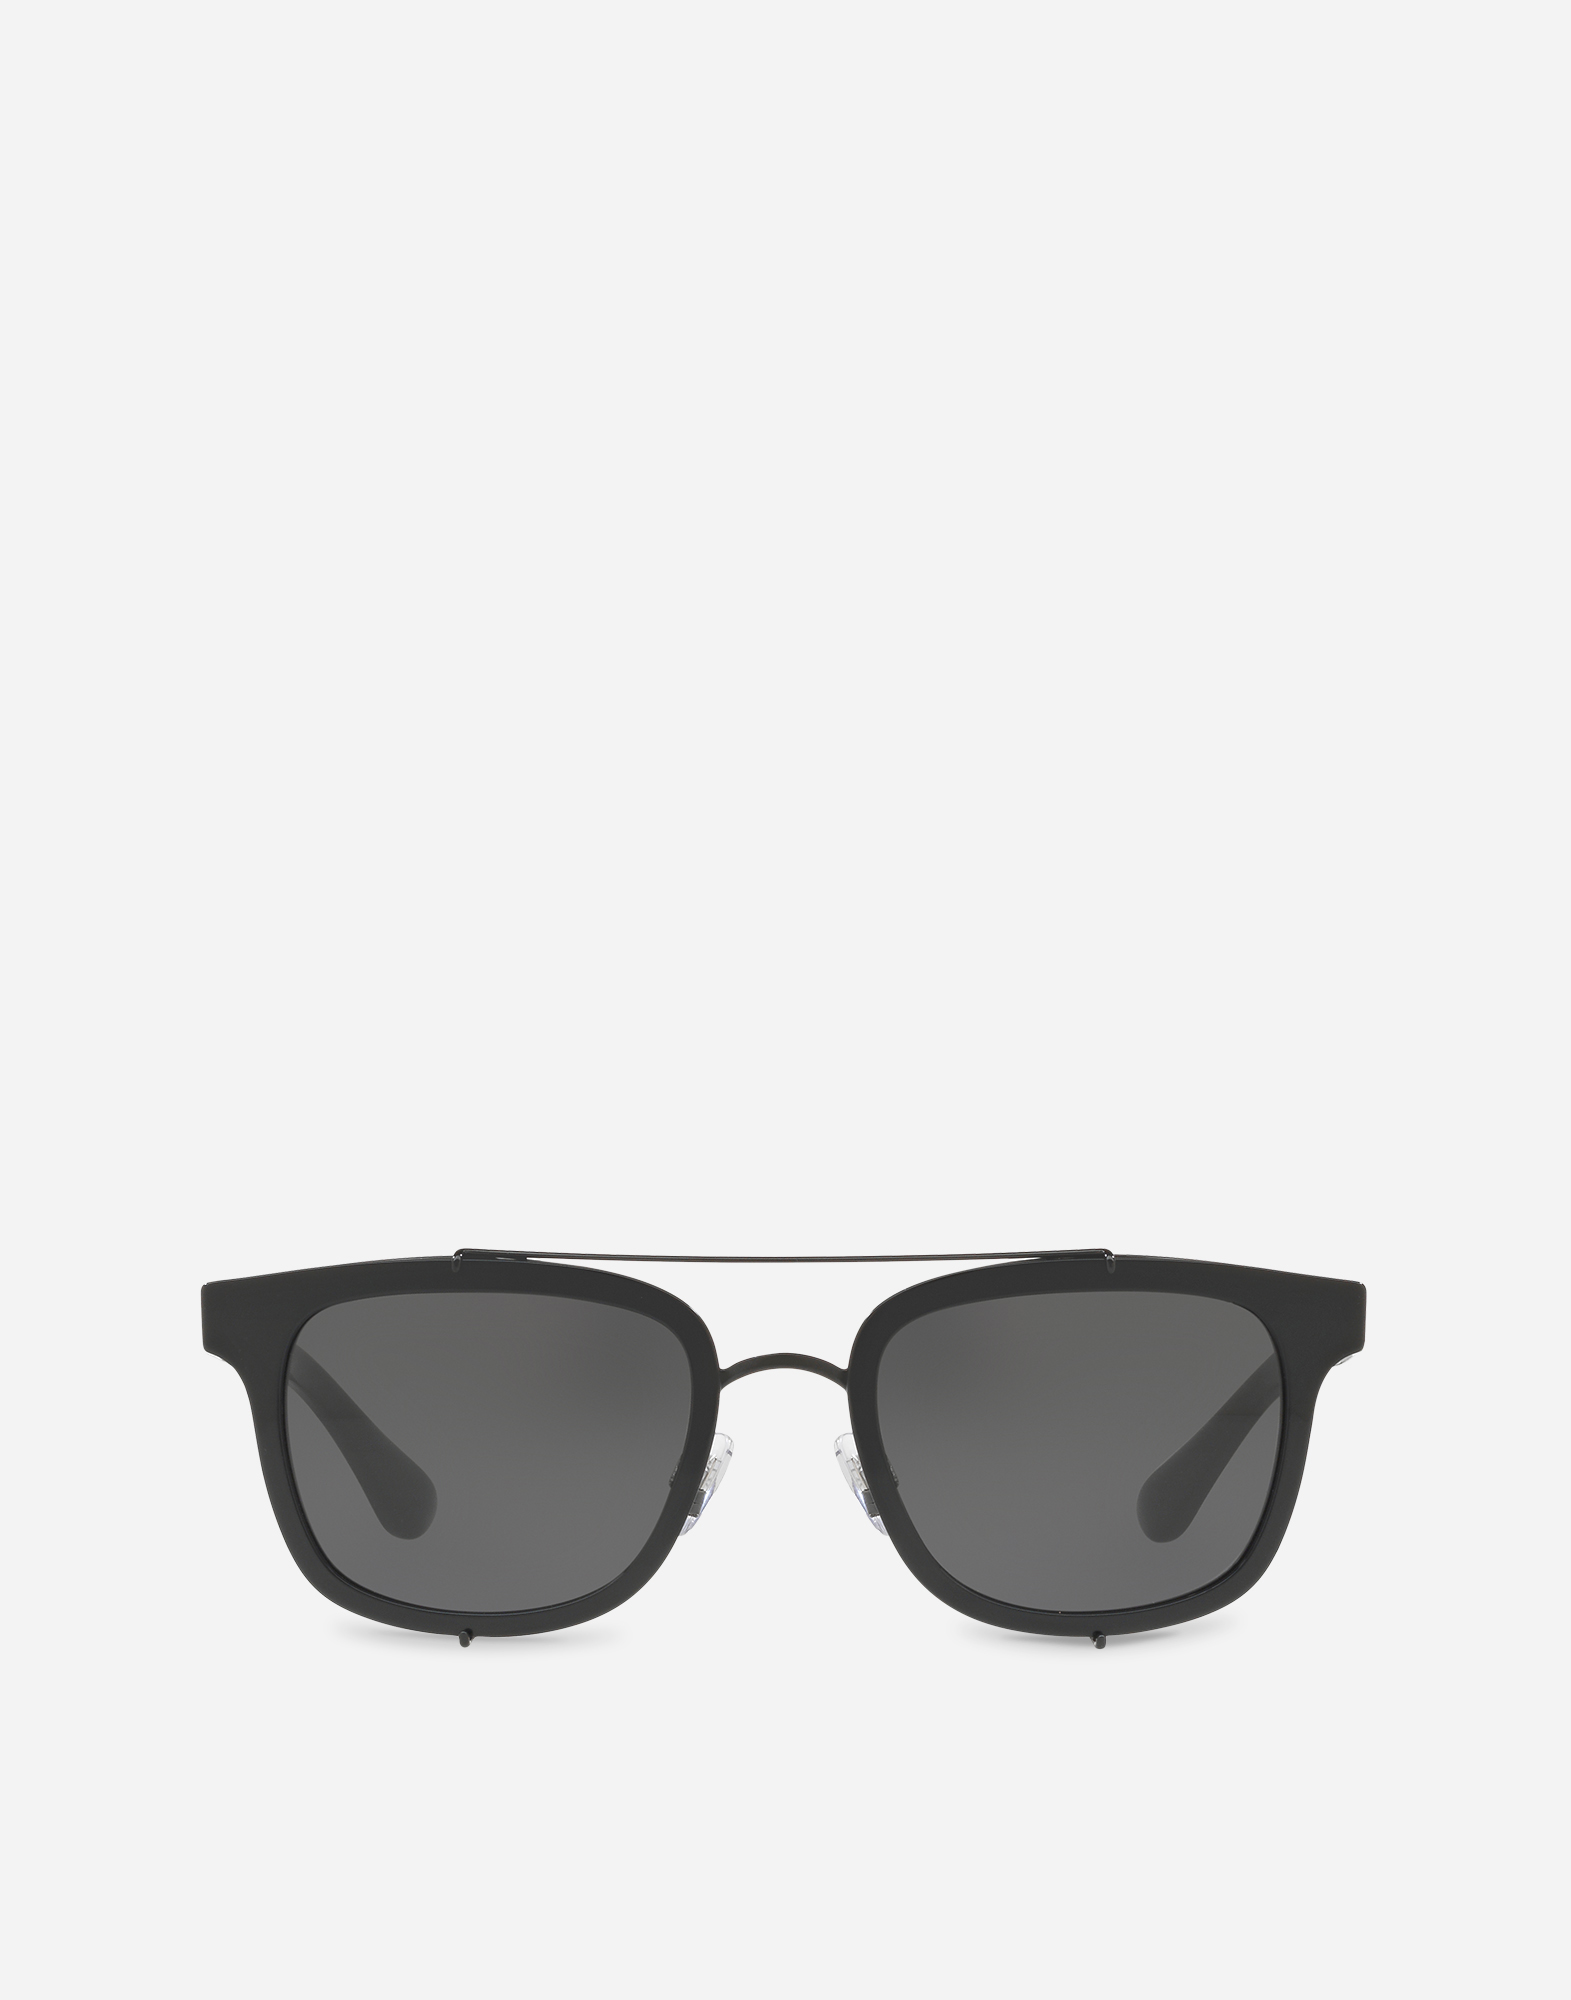 SQUARE SUNGLASSES WITH A METAL FRAME